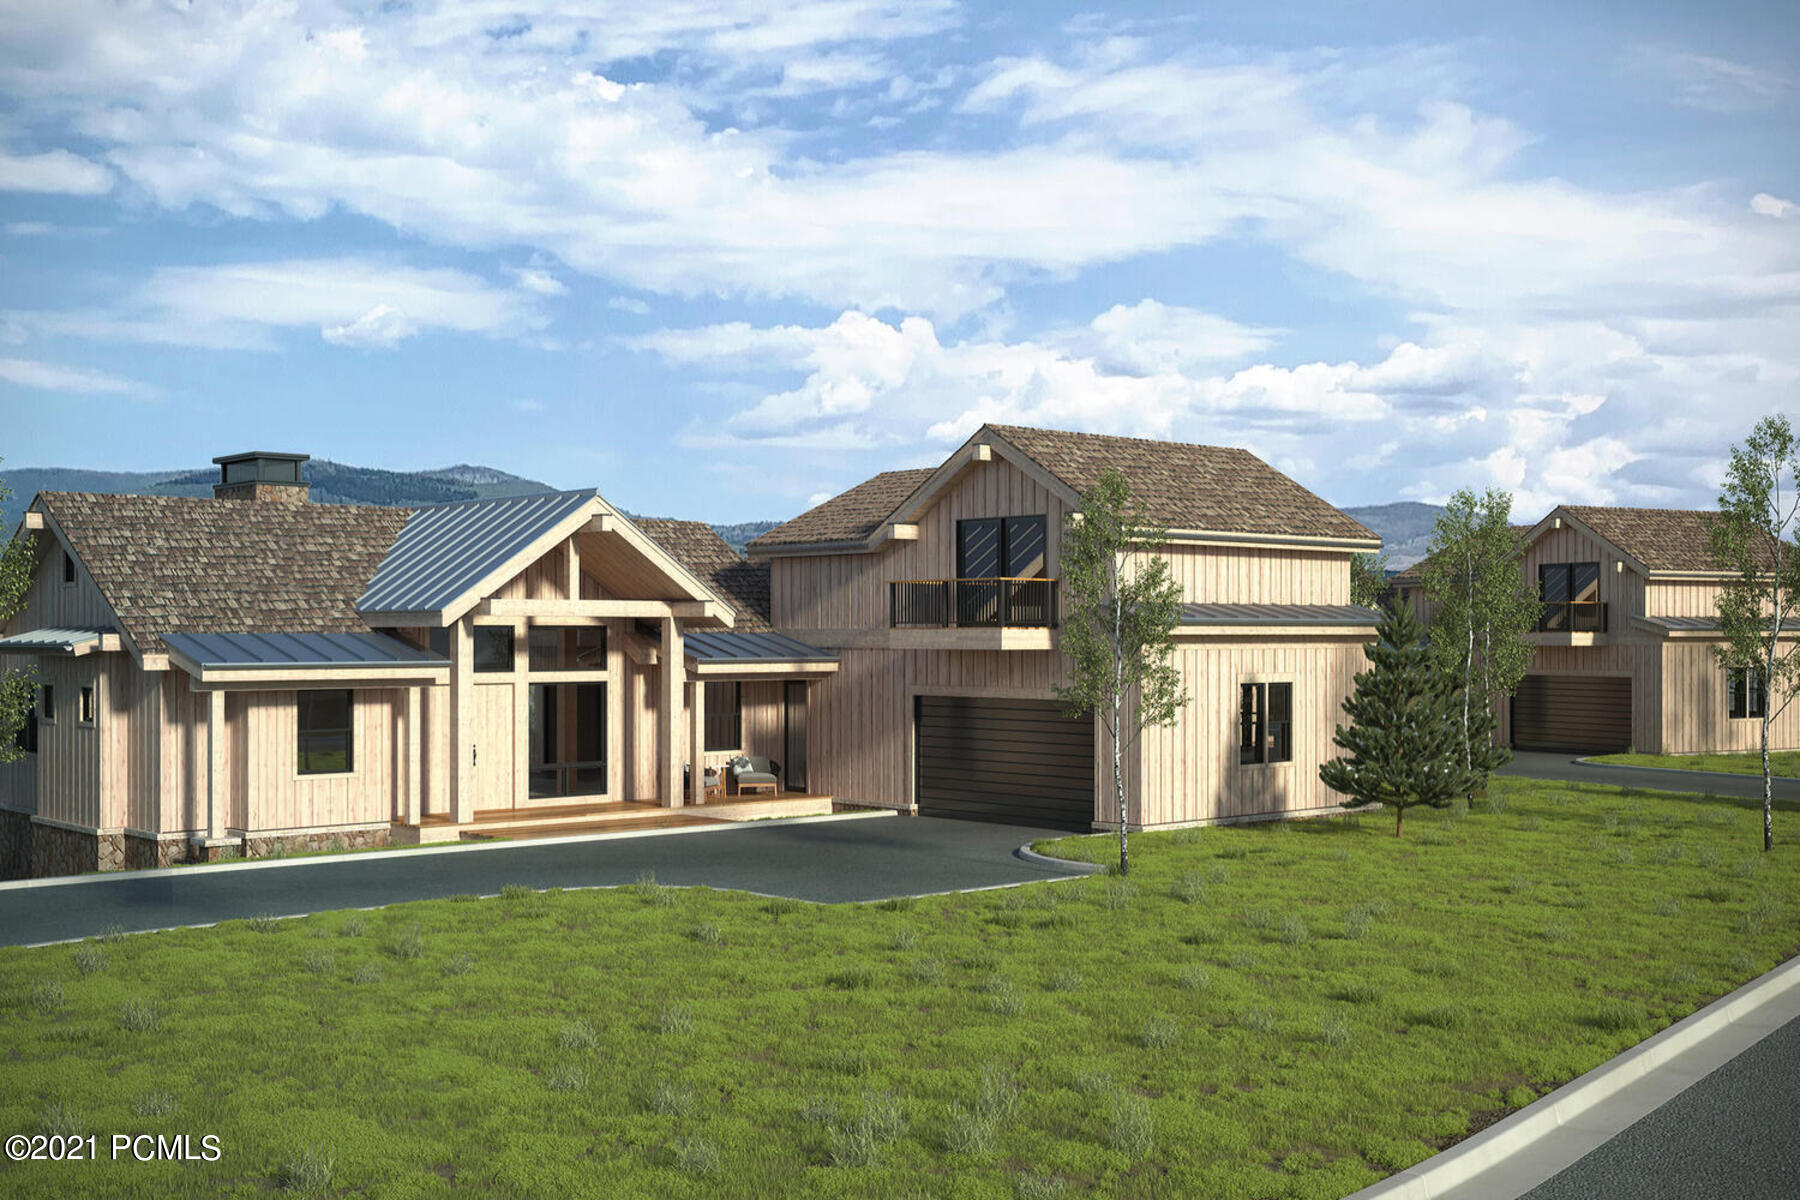 7615 Stardust Cout, 319a, 5.9, Heber City, Utah 84032, 5 Bedrooms Bedrooms, ,6 BathroomsBathrooms,Fractional Interest,For Sale,Stardust Cout, 319a, 5.9,12100914